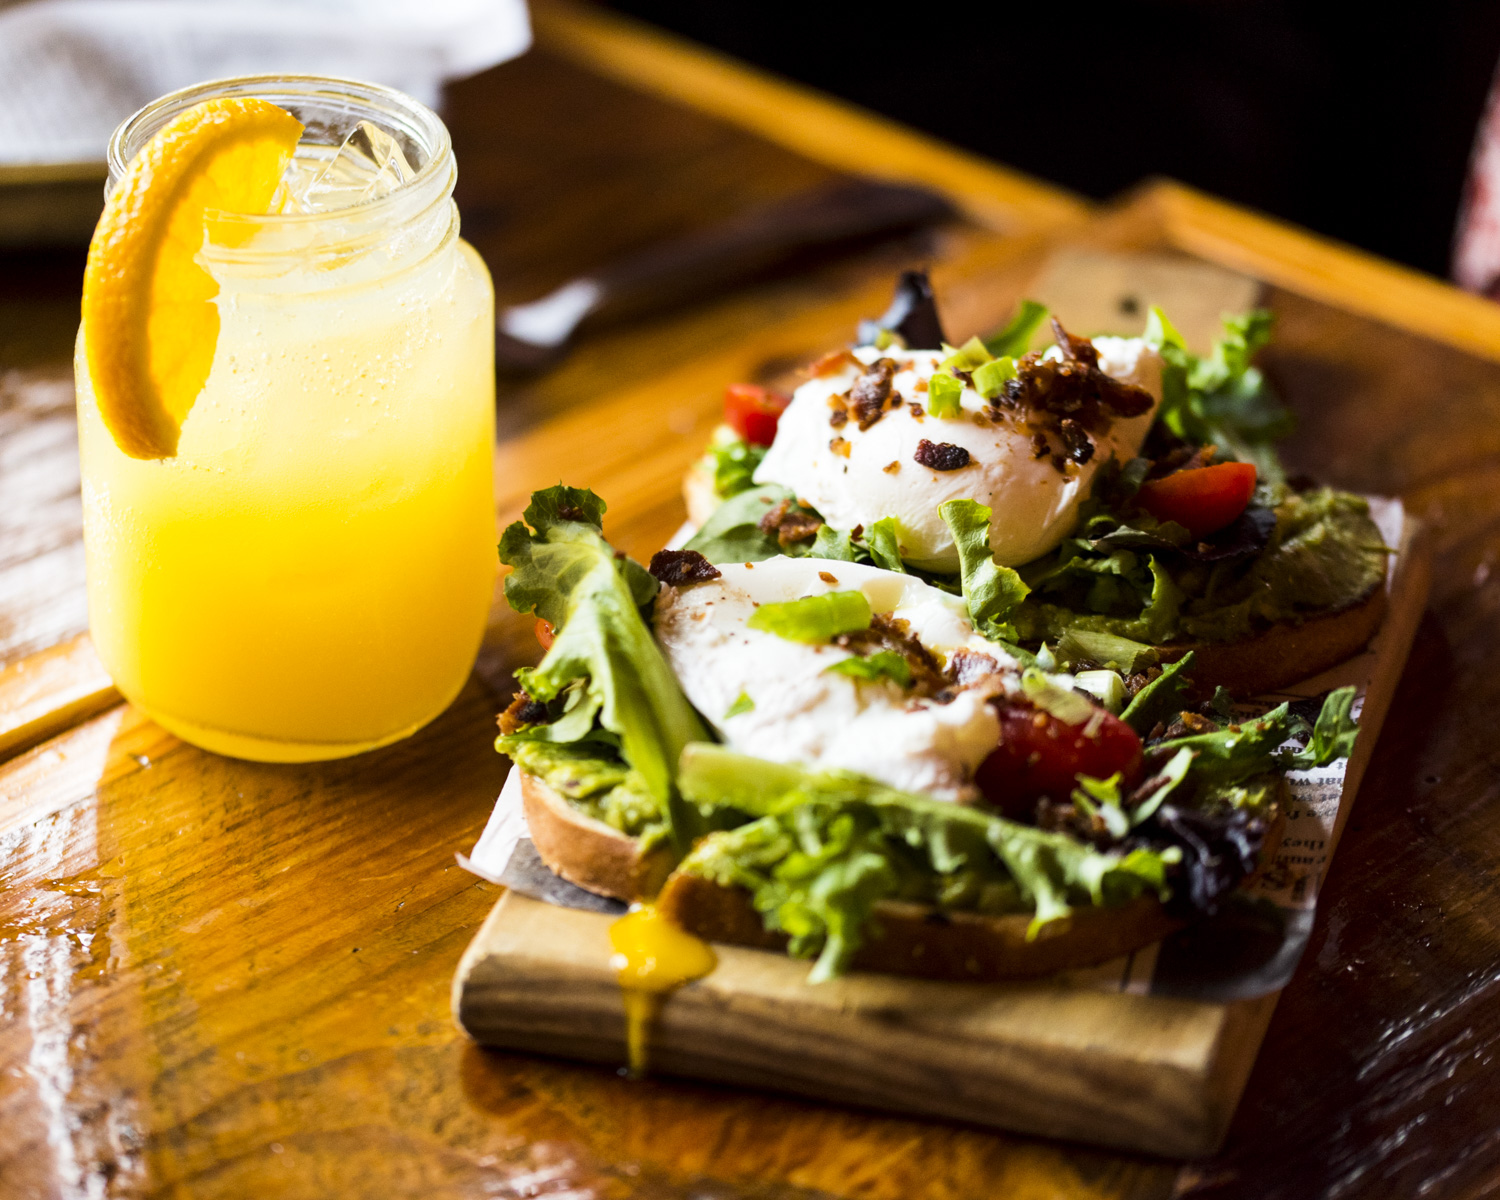 Weekend Brunch - Join us for a boozy brunch Saturday & Sundays!